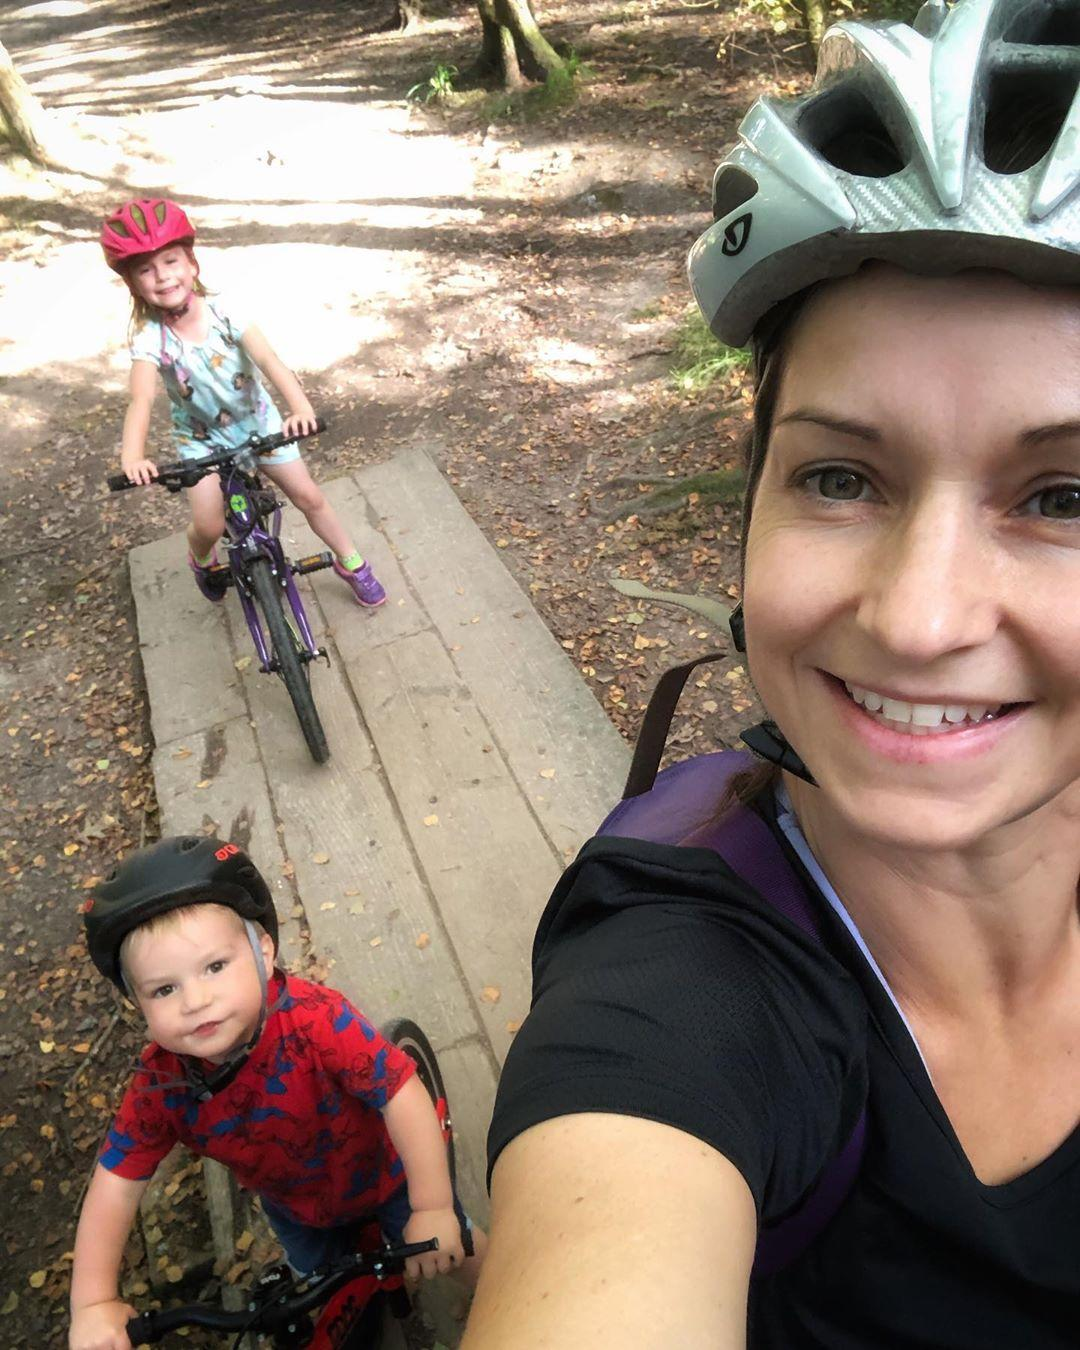 family selfie of a mum and her 2 children on their bikes behind her instagram handle fitmummyhappymummy